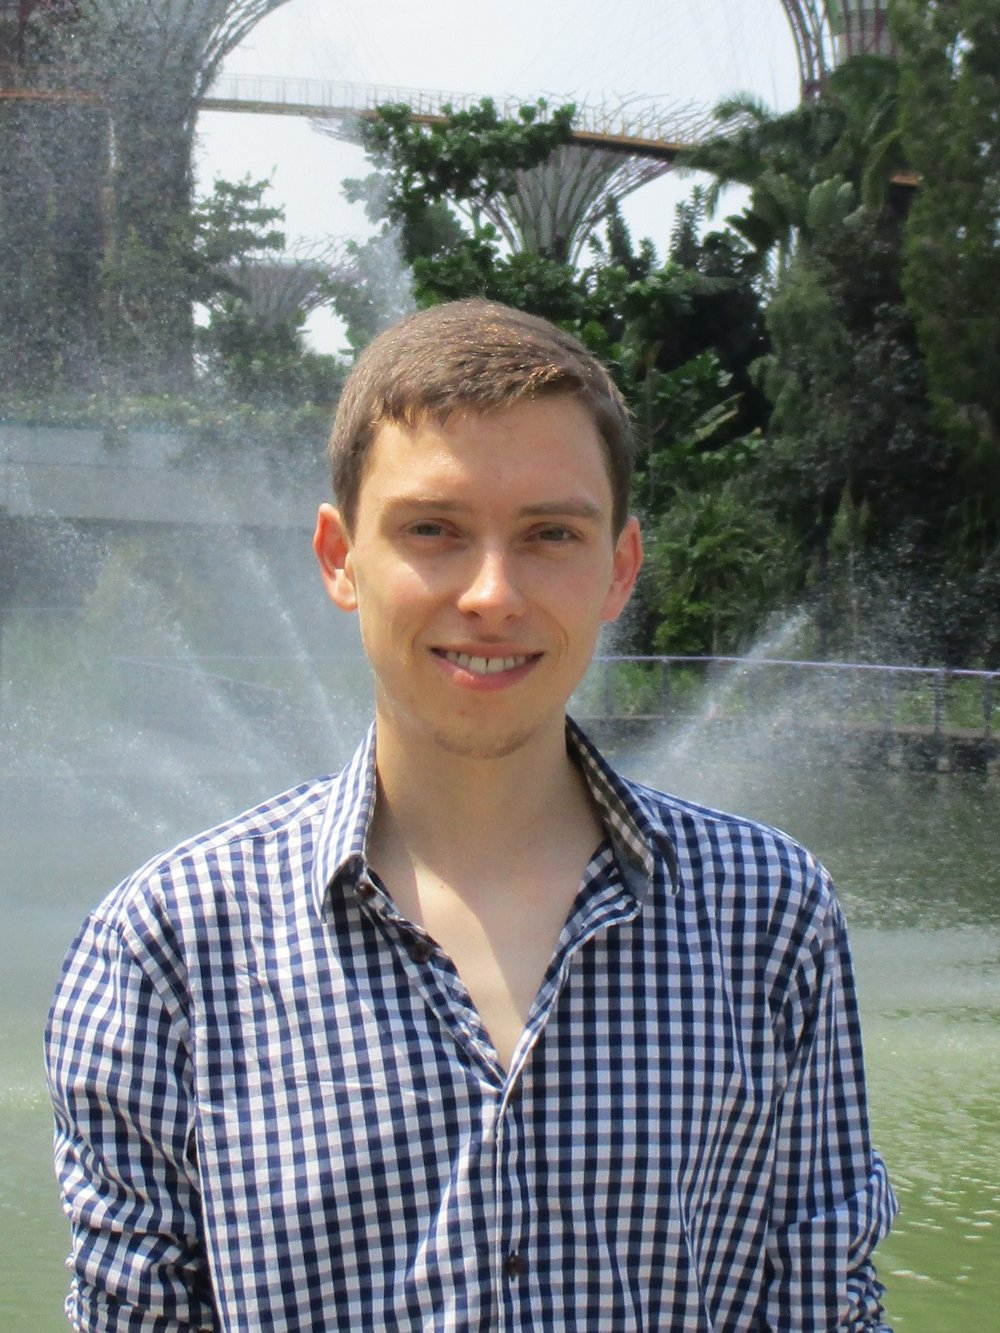 Luke Wharton    Great Britain PhD Student Department of Physics and Astronomy   Luke is focusing on the design and synthesis of novel bifunctional chelating ligands, based upon the picolinic acid moiety, for the incorporation of medically relevant radionuclides such as 111In and 177Lu.